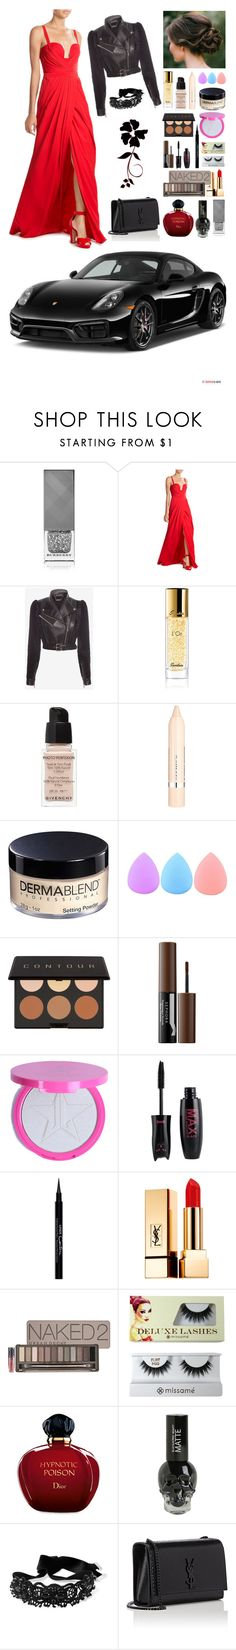 """""""Red Blooded Woman"""" by callmethejoker ❤ liked on Polyvore featuring Burberry, Alexander McQueen, Guerlain, Givenchy, L'Oréal Paris, Dermablend, Zodaca, Elizabeth Mott, Sephora Collection and Yves Saint Laurent"""